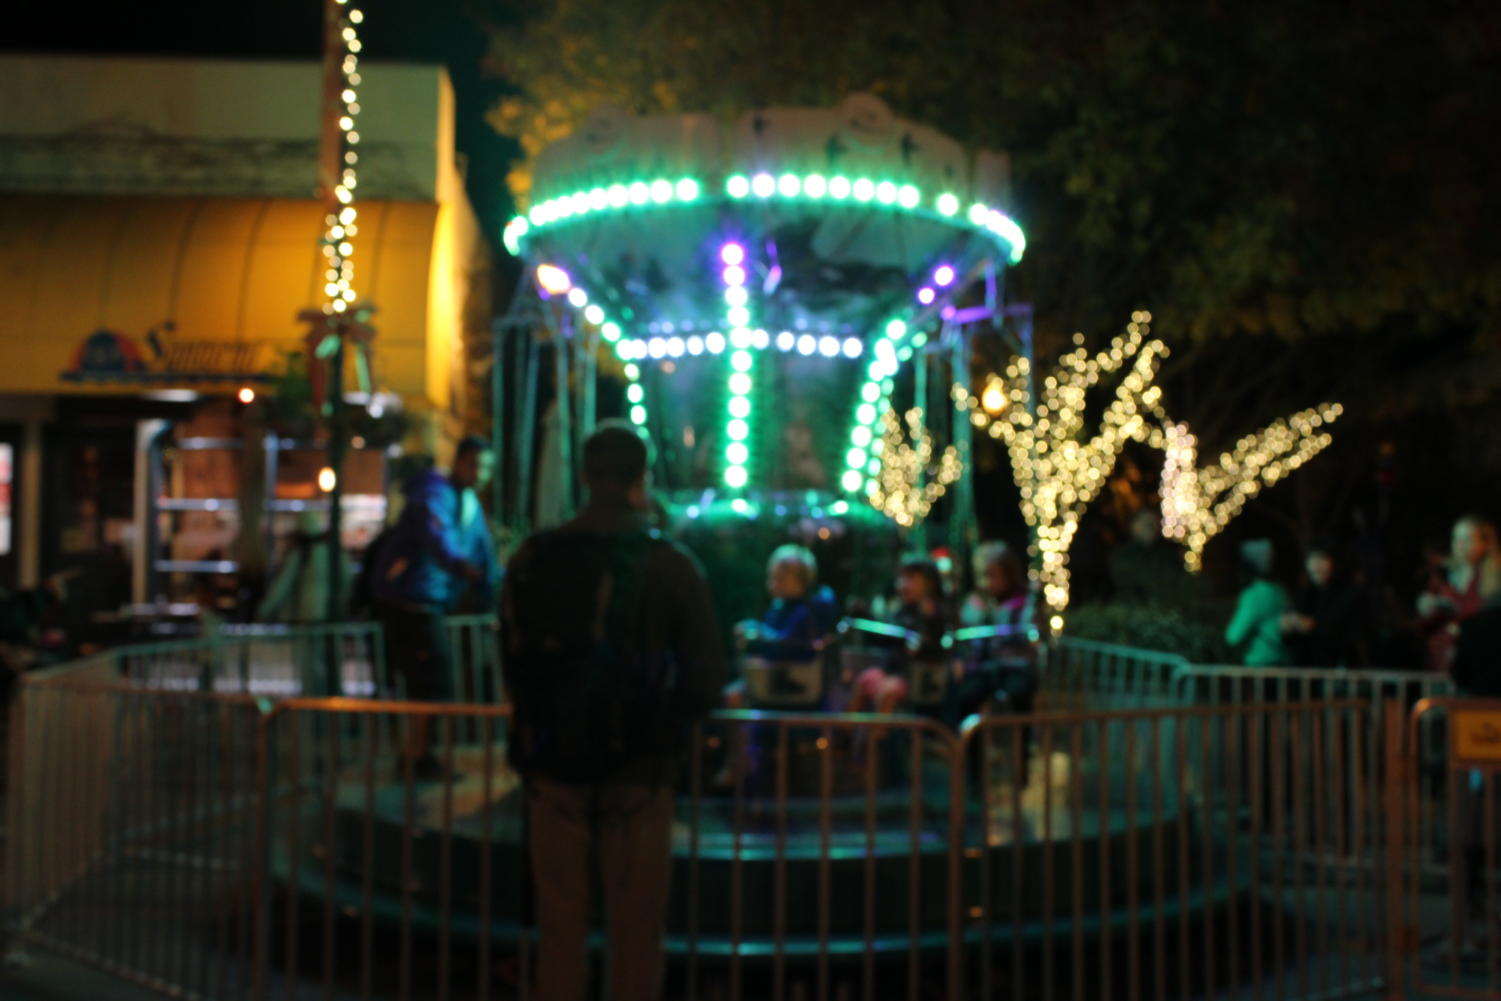 Kids+swing+around+on+one+of+the+rides+that+the+festival+offered.